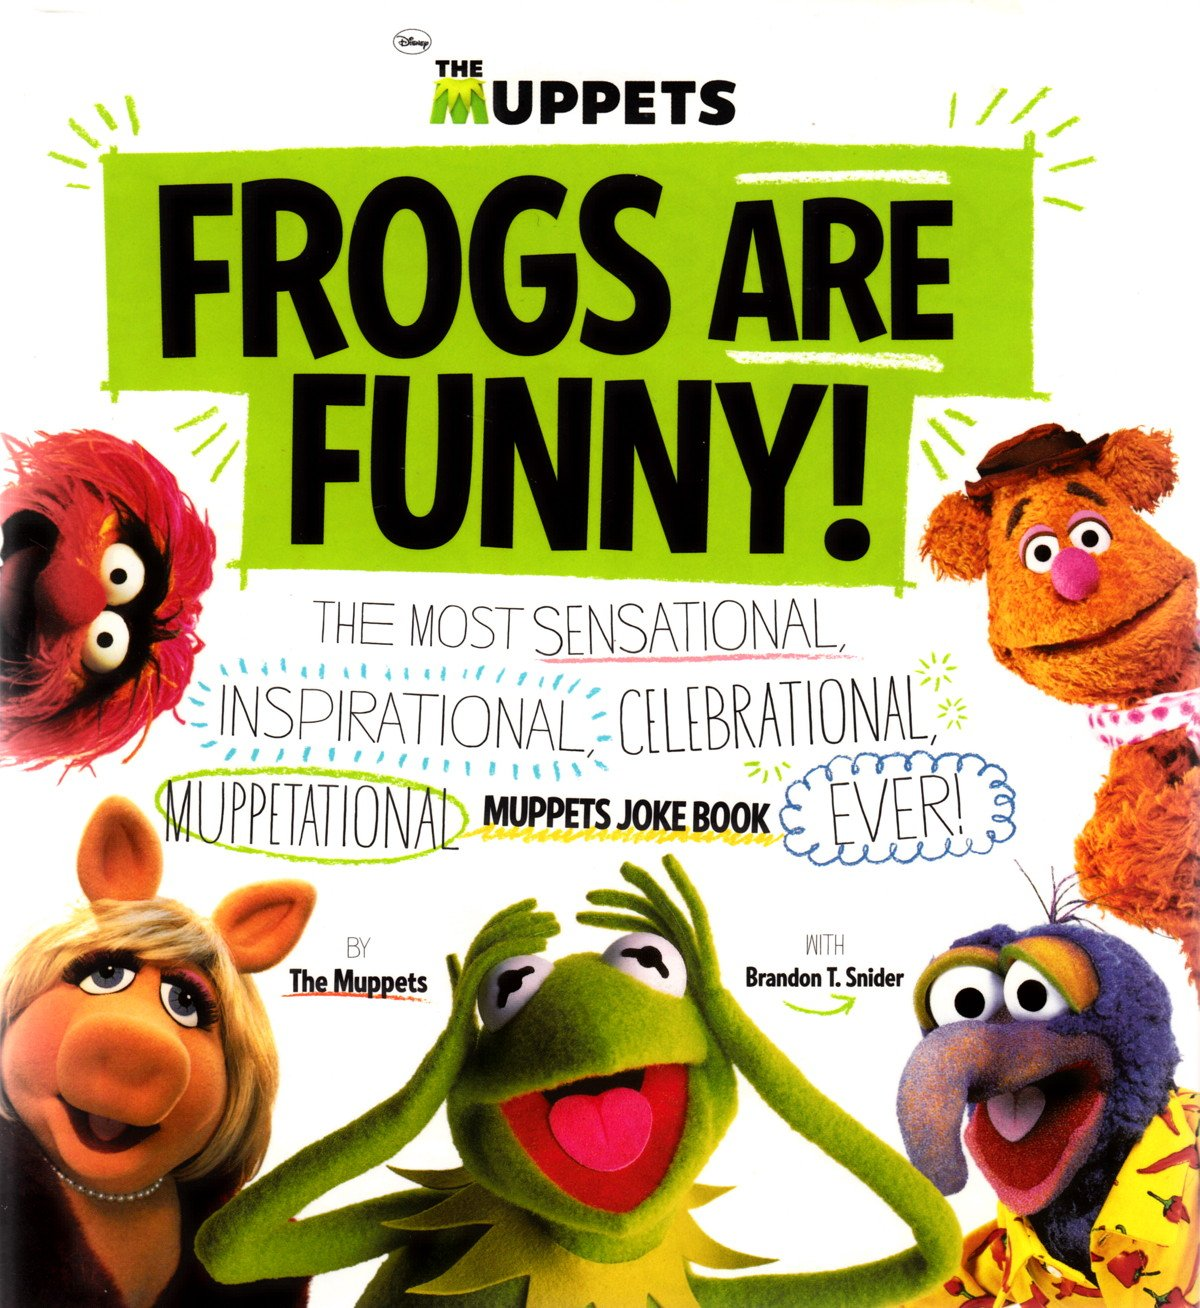 25 Best Images About The Muppet Quotes And Sayings On: Best Muppet Quotes. QuotesGram